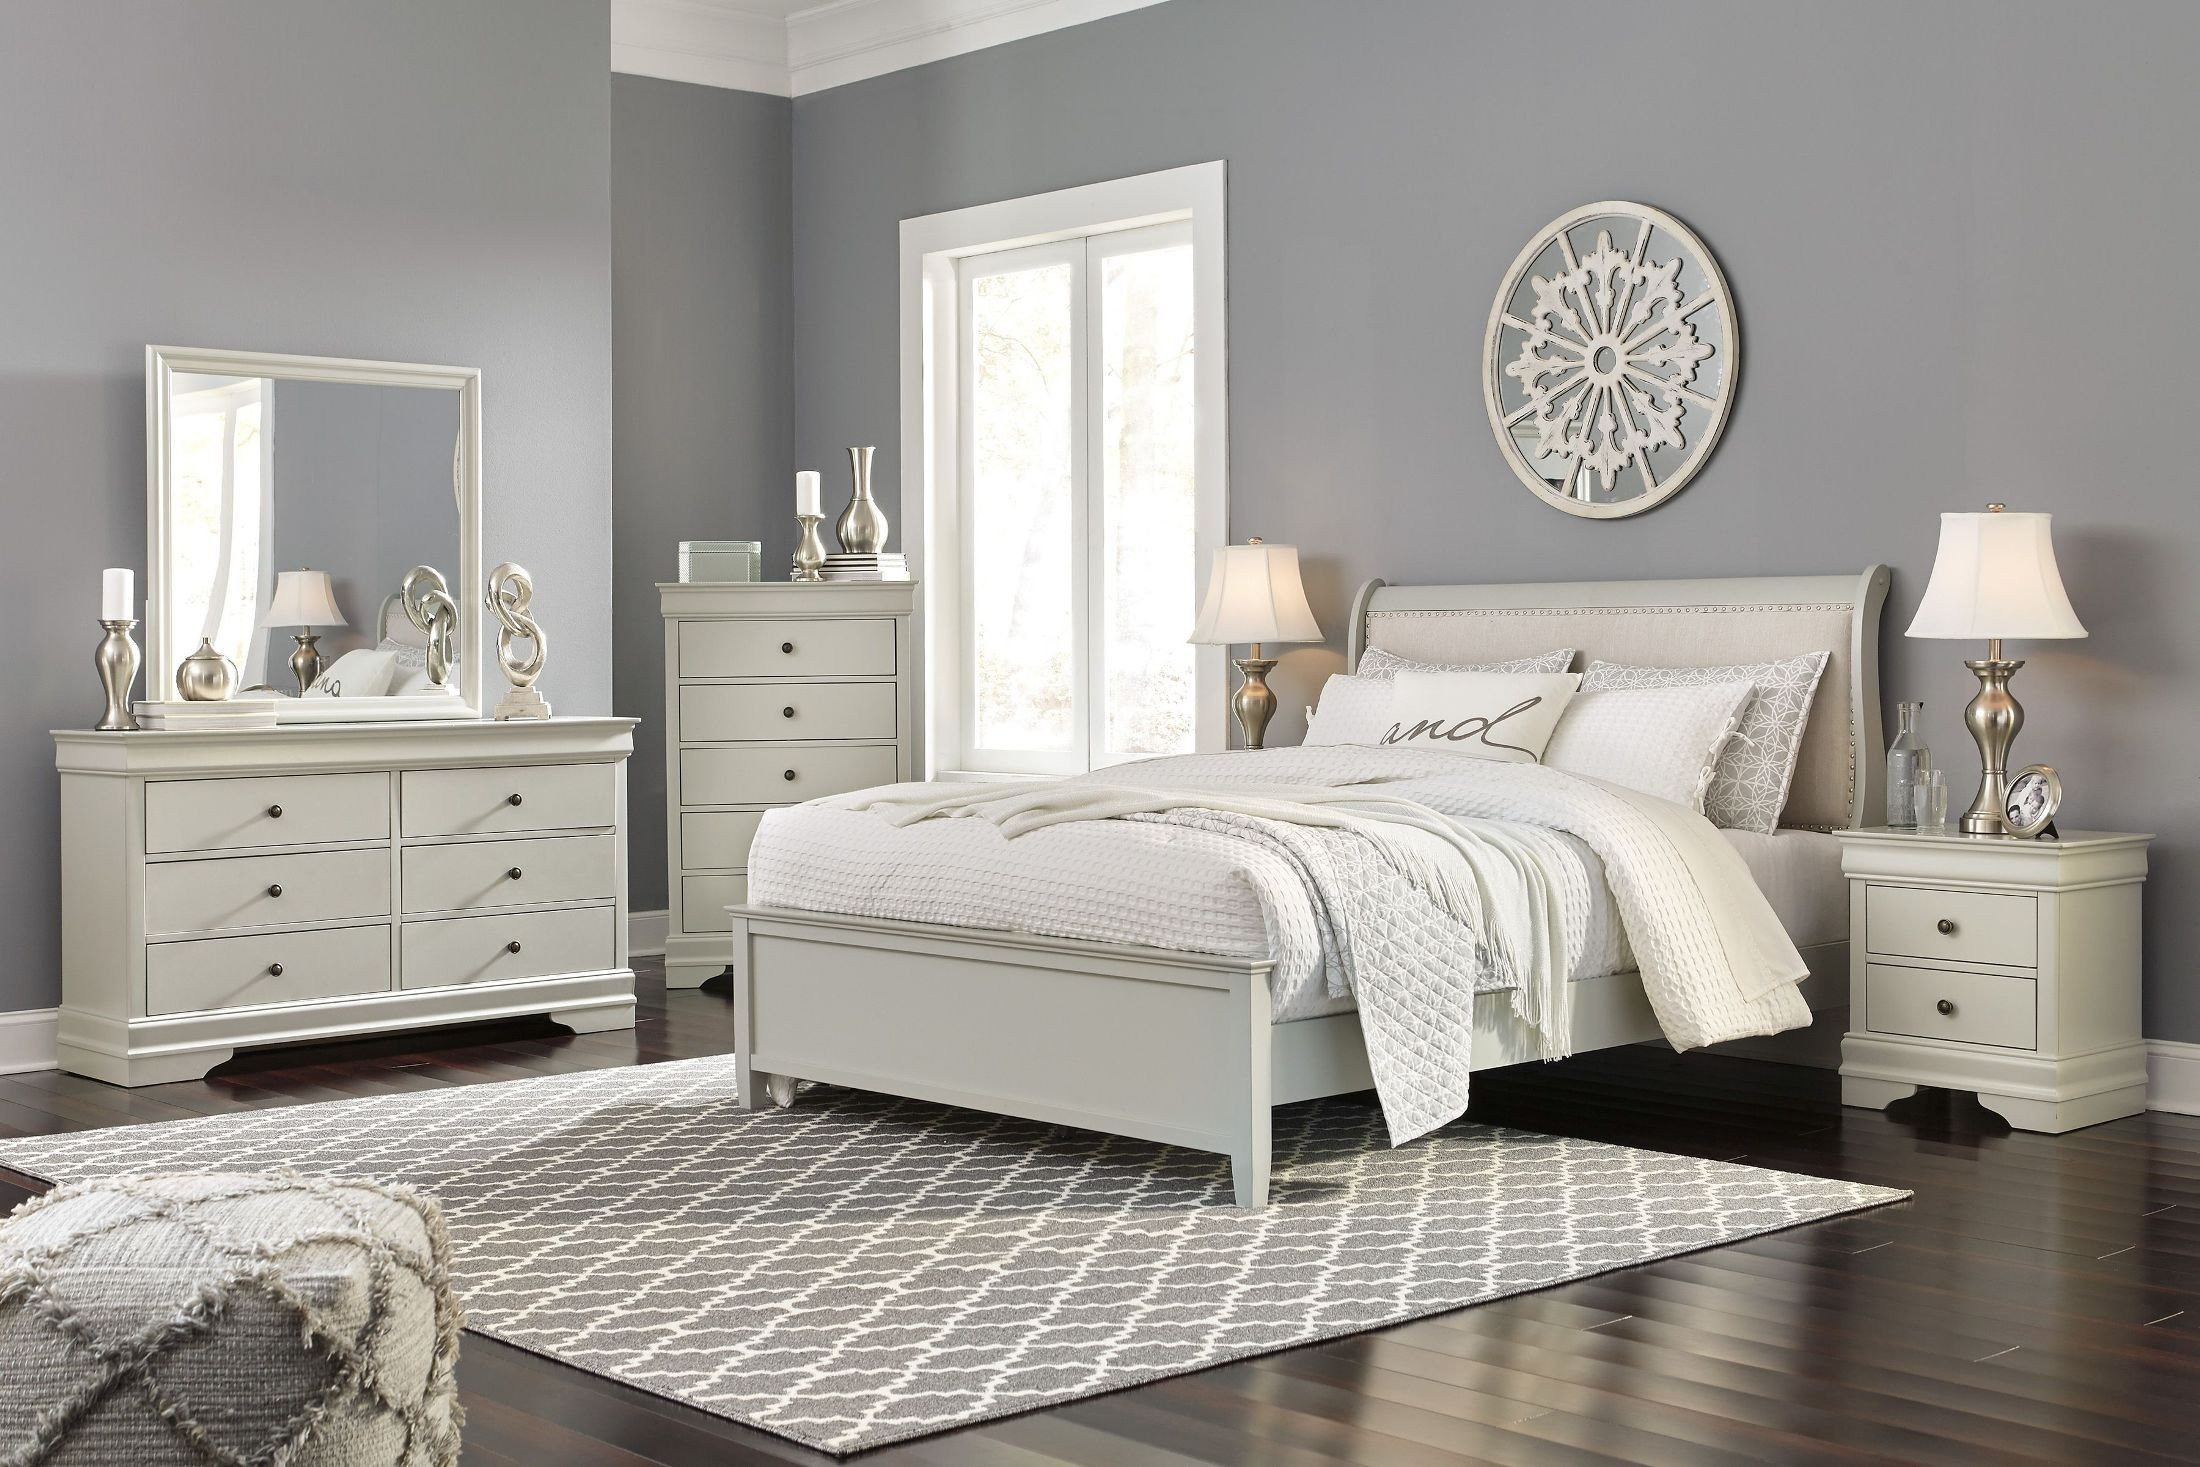 Ashley White Bedroom Furniture Inspirational Emma Mason Signature Jarred 5 Piece Sleigh Bedroom Set In Gray